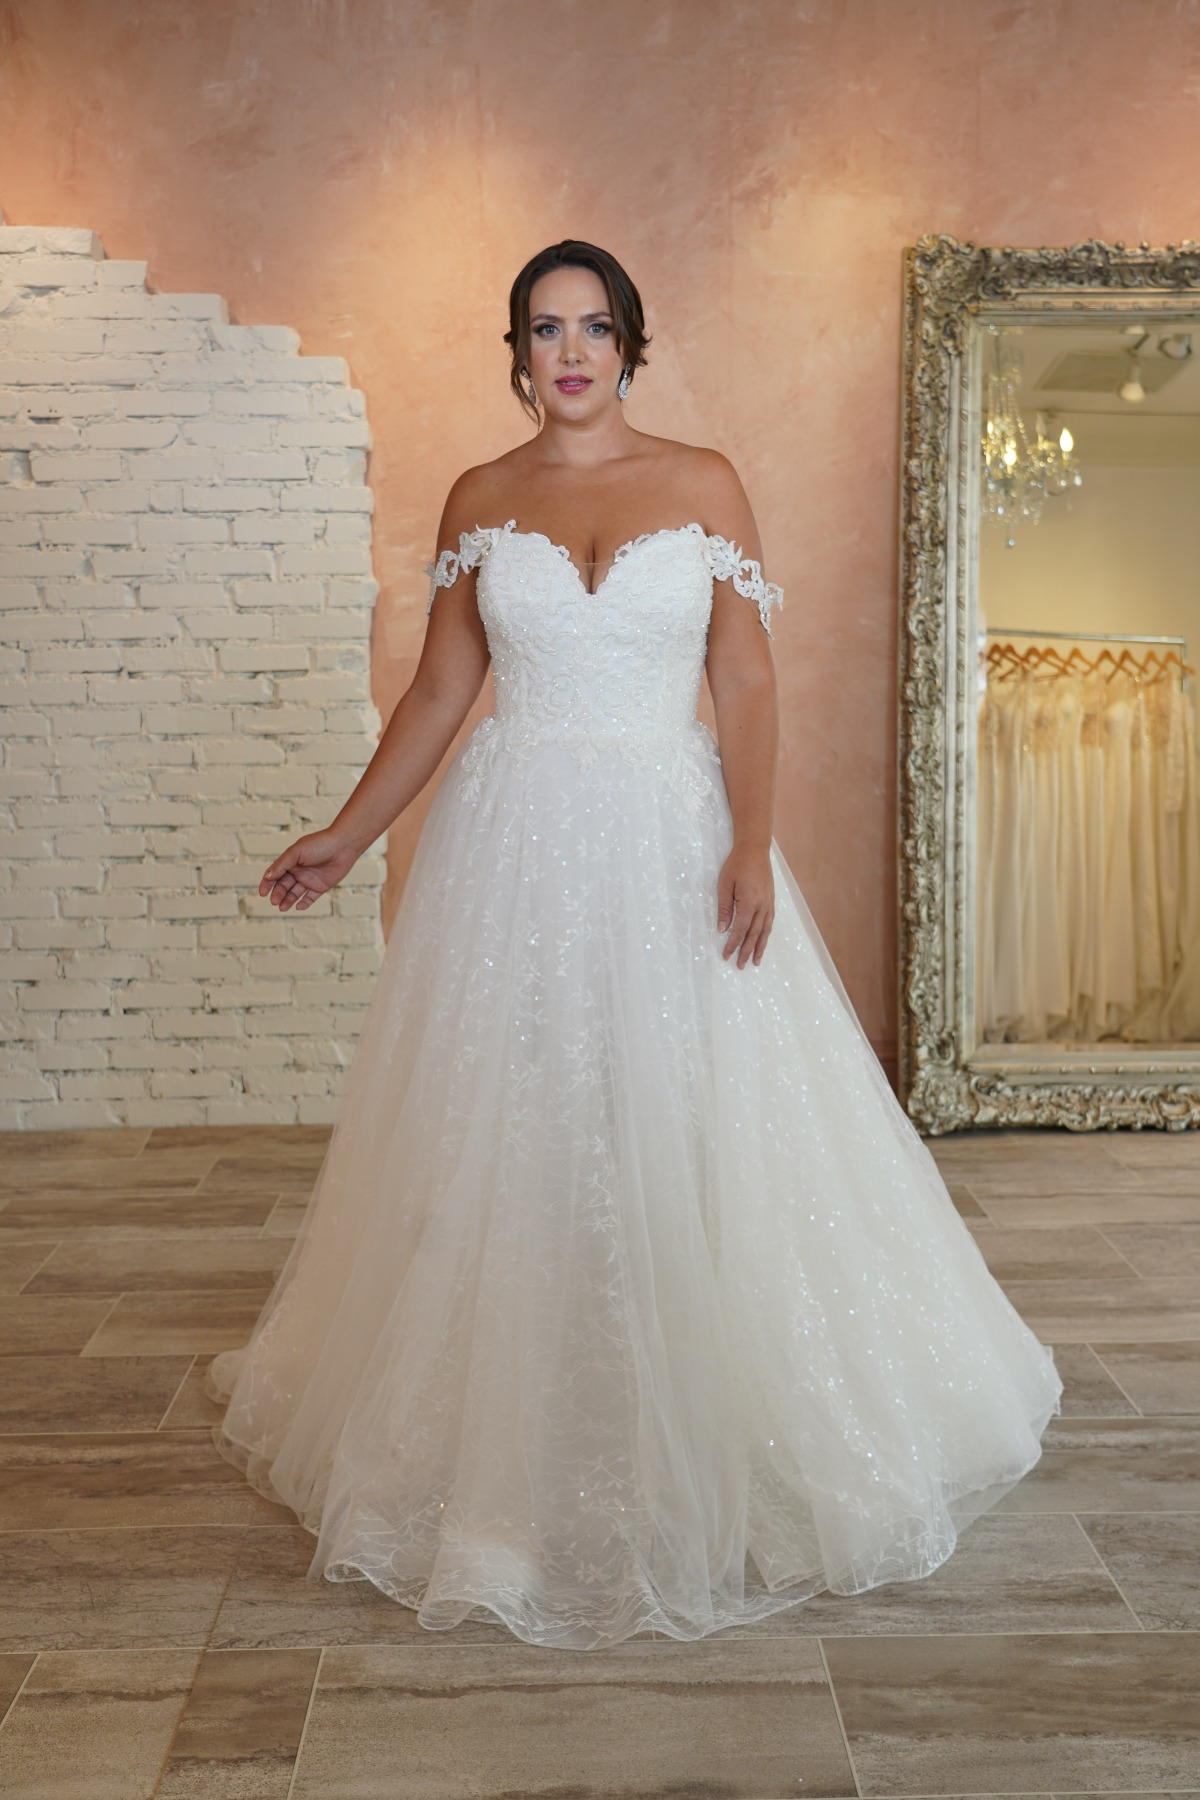 Jana Ann Couture Launches 2nd Flagship Bridal Boutique in Southern California